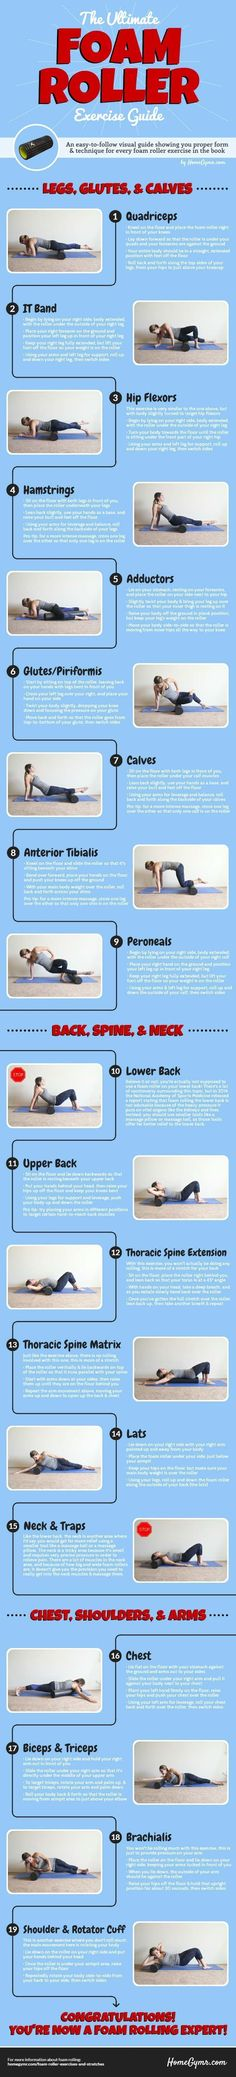 If You're In Pain, START HERE. 10 Exercises for Back and Hip Pain You Should Be Doing Now. Do This 5 minute Exercise When It Hurts to Stand. Your Hip Flexors and Hamstrings Can Hurt Your Back. The Best Tips for Back Spasms. An Easy Stretch To Relieve Glute (Butt) Muscle Pain. Conquer Your Morning Stiffness. #HipFlexorsStrengthening #HipFlexorsTips